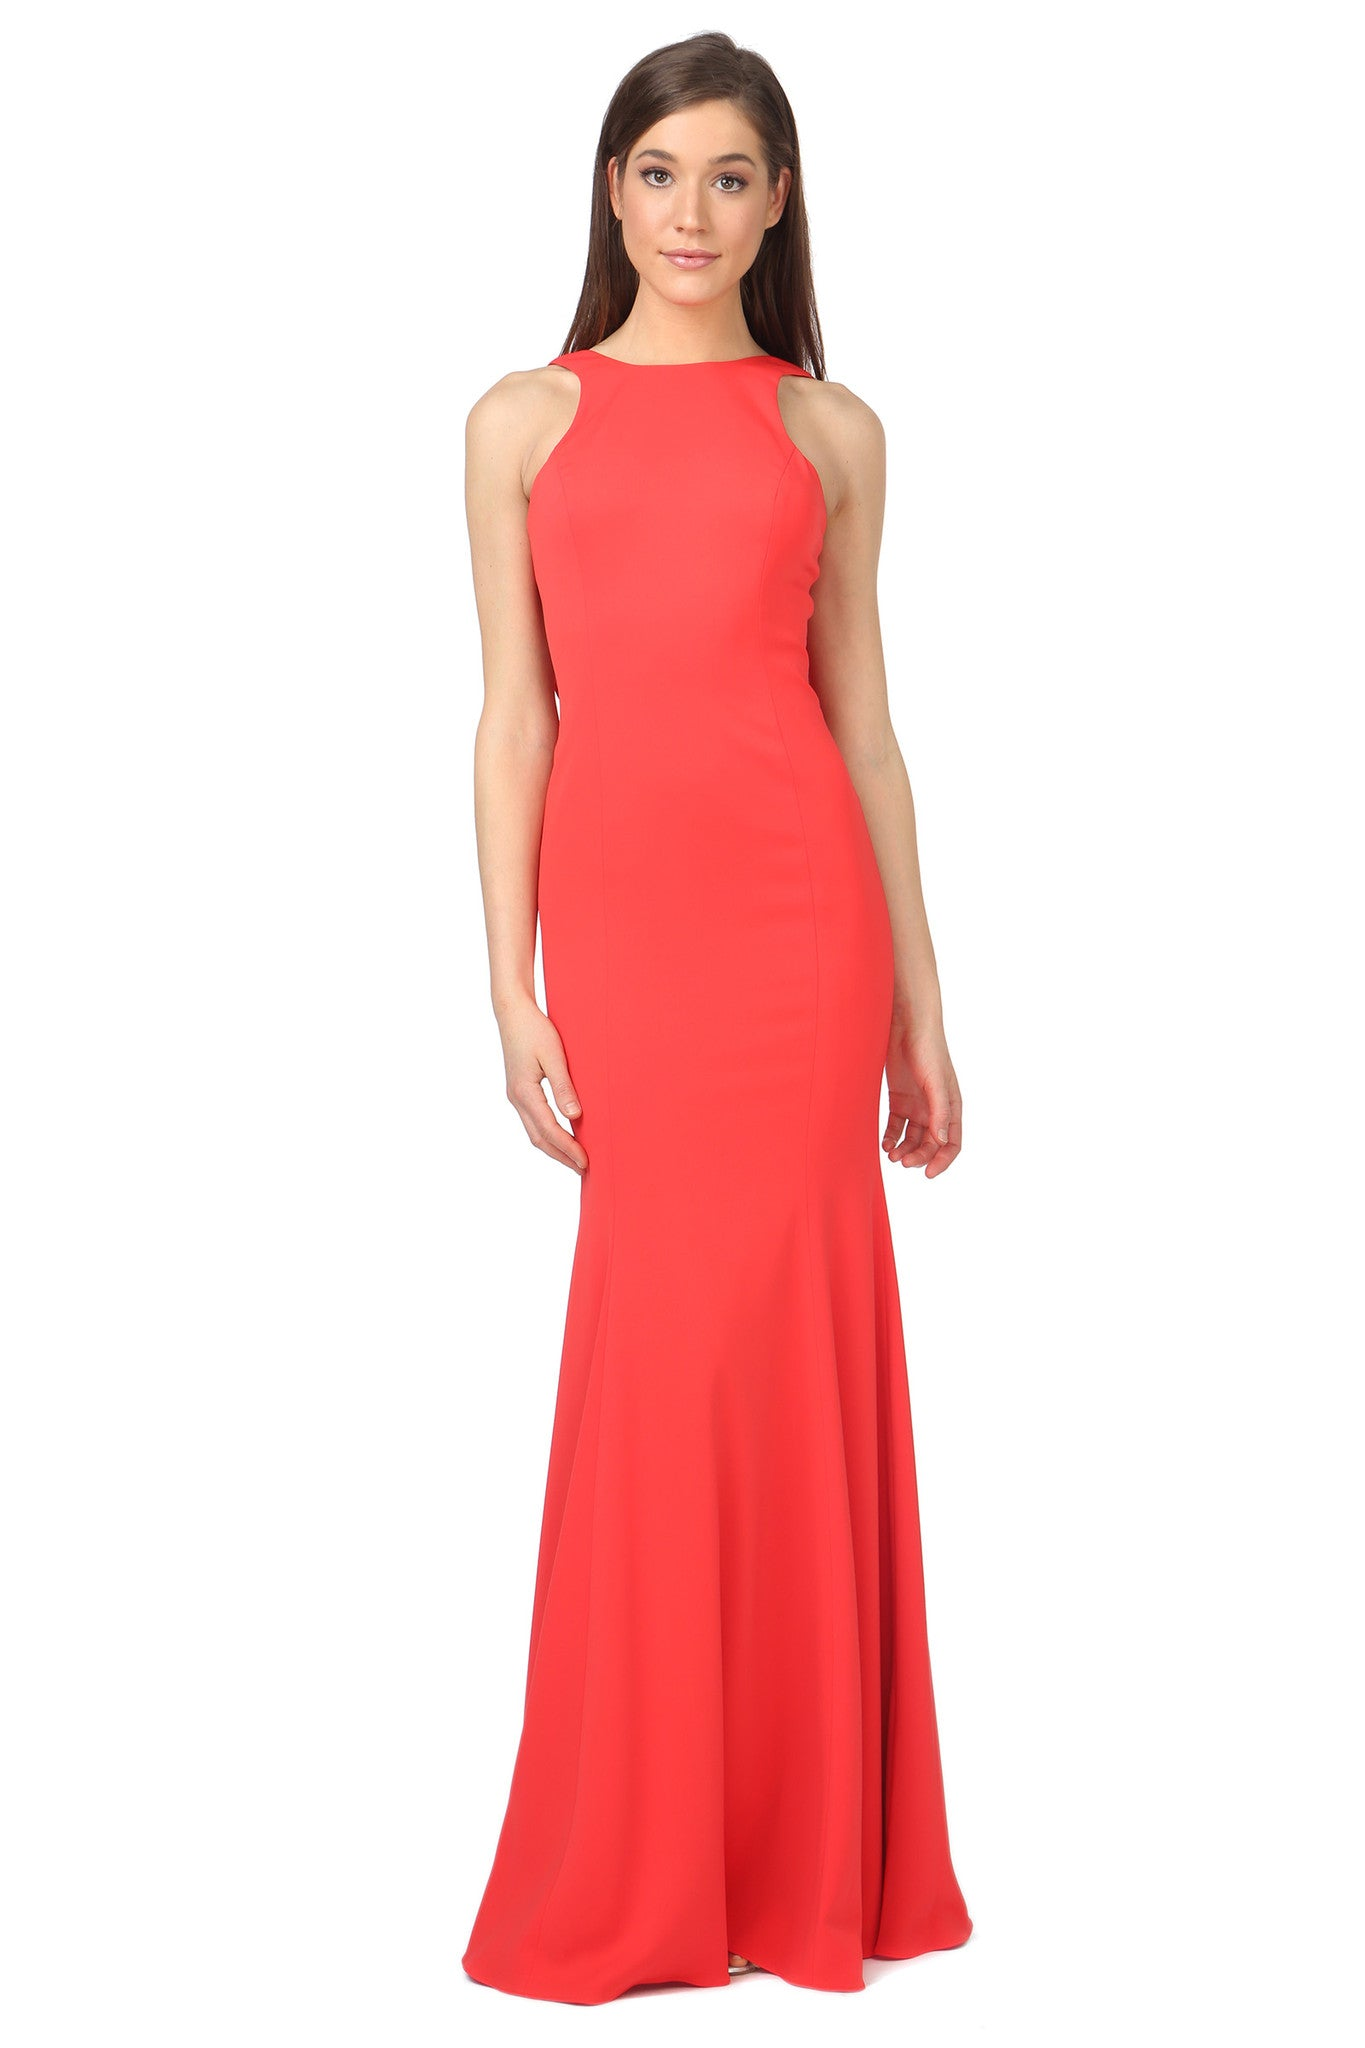 Jay Godfrey Red Draped Back Gown - Front View